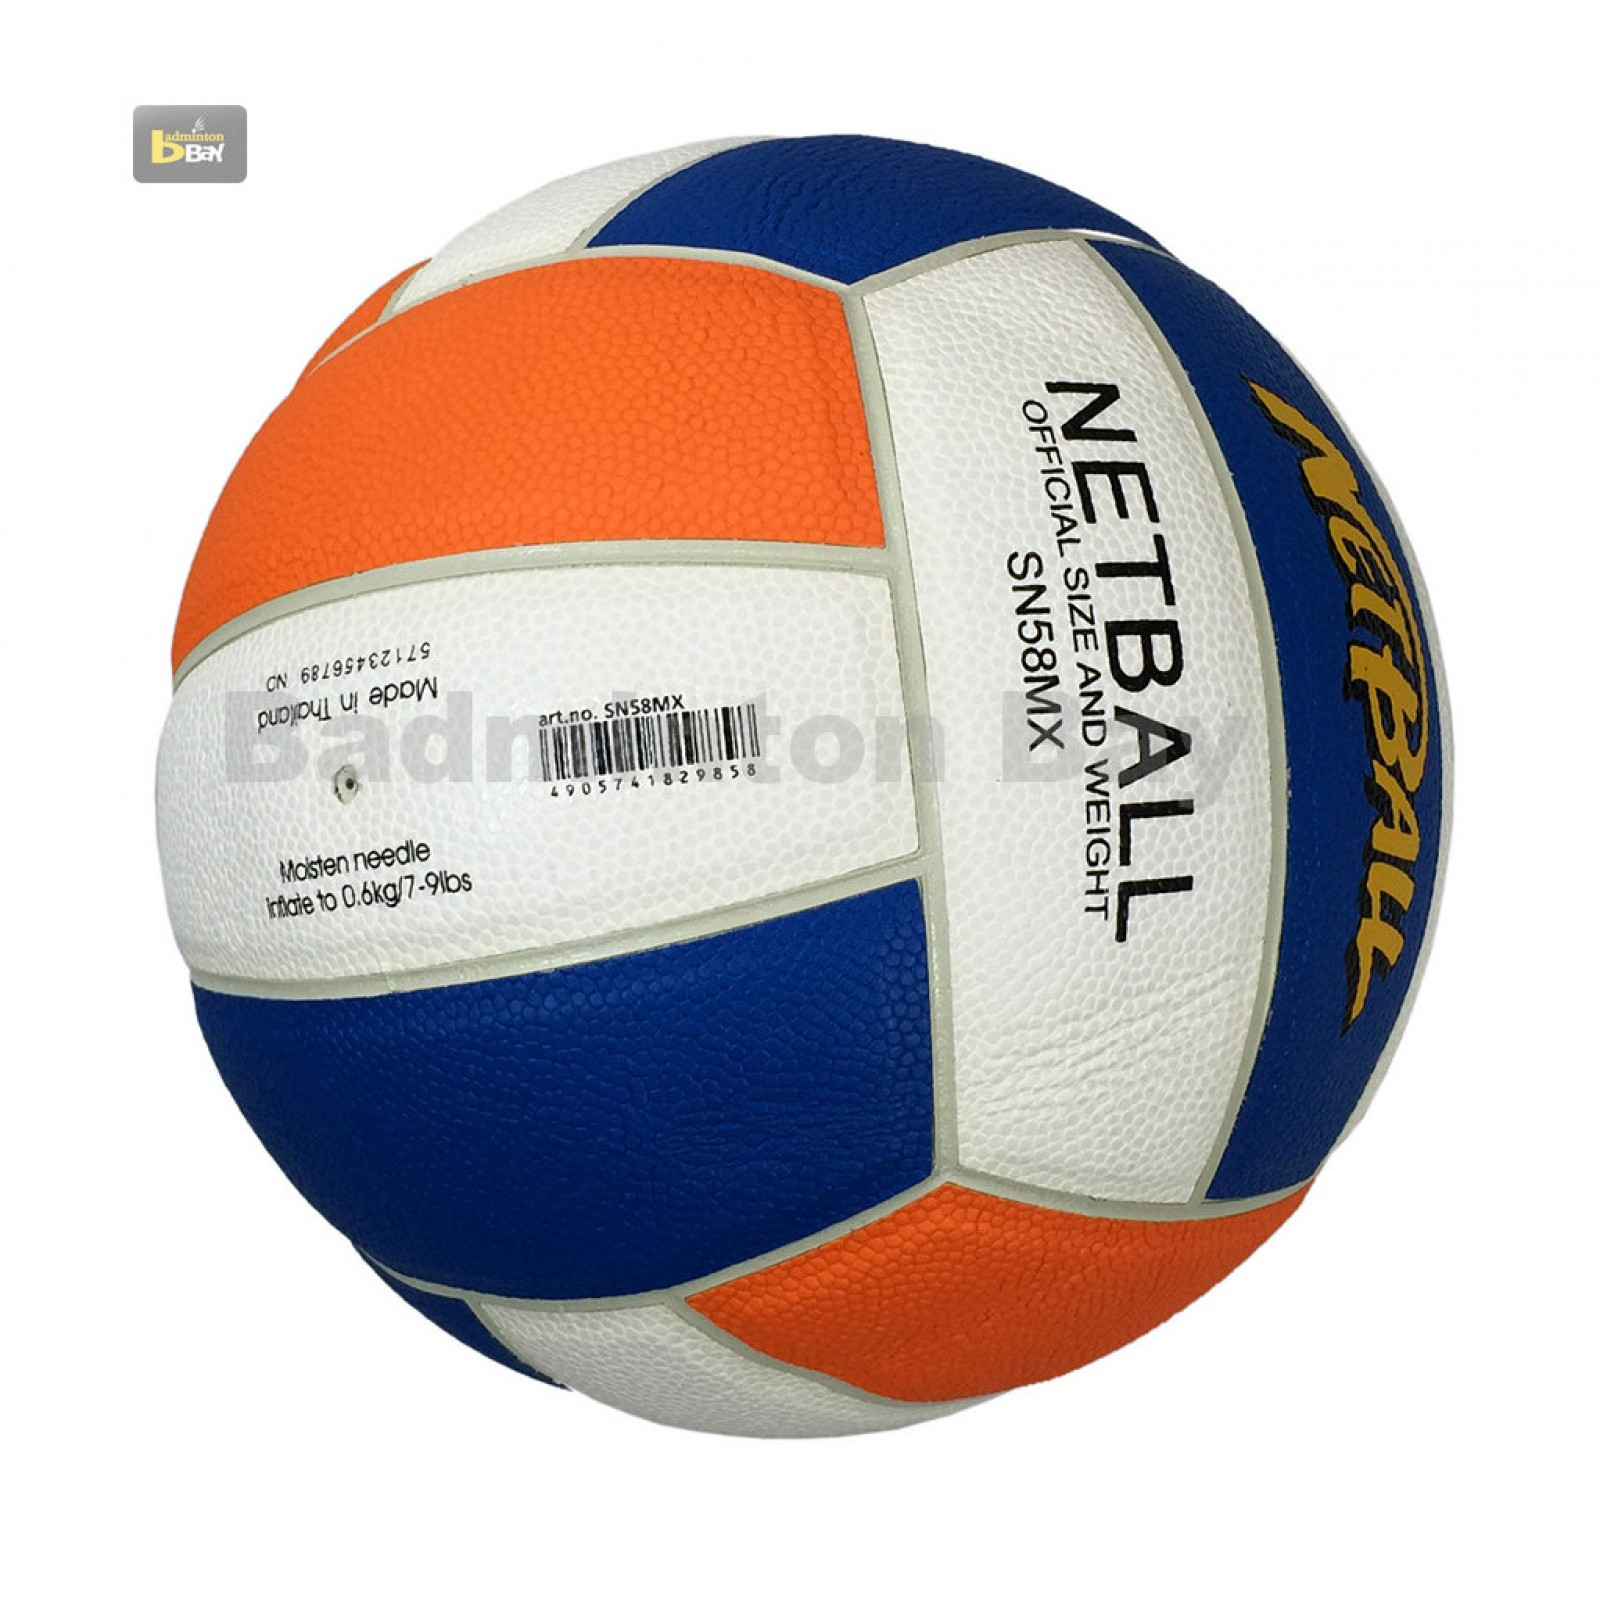 Out of stock Molten SN58MX Netball Ball Synthetic Leather Size 5